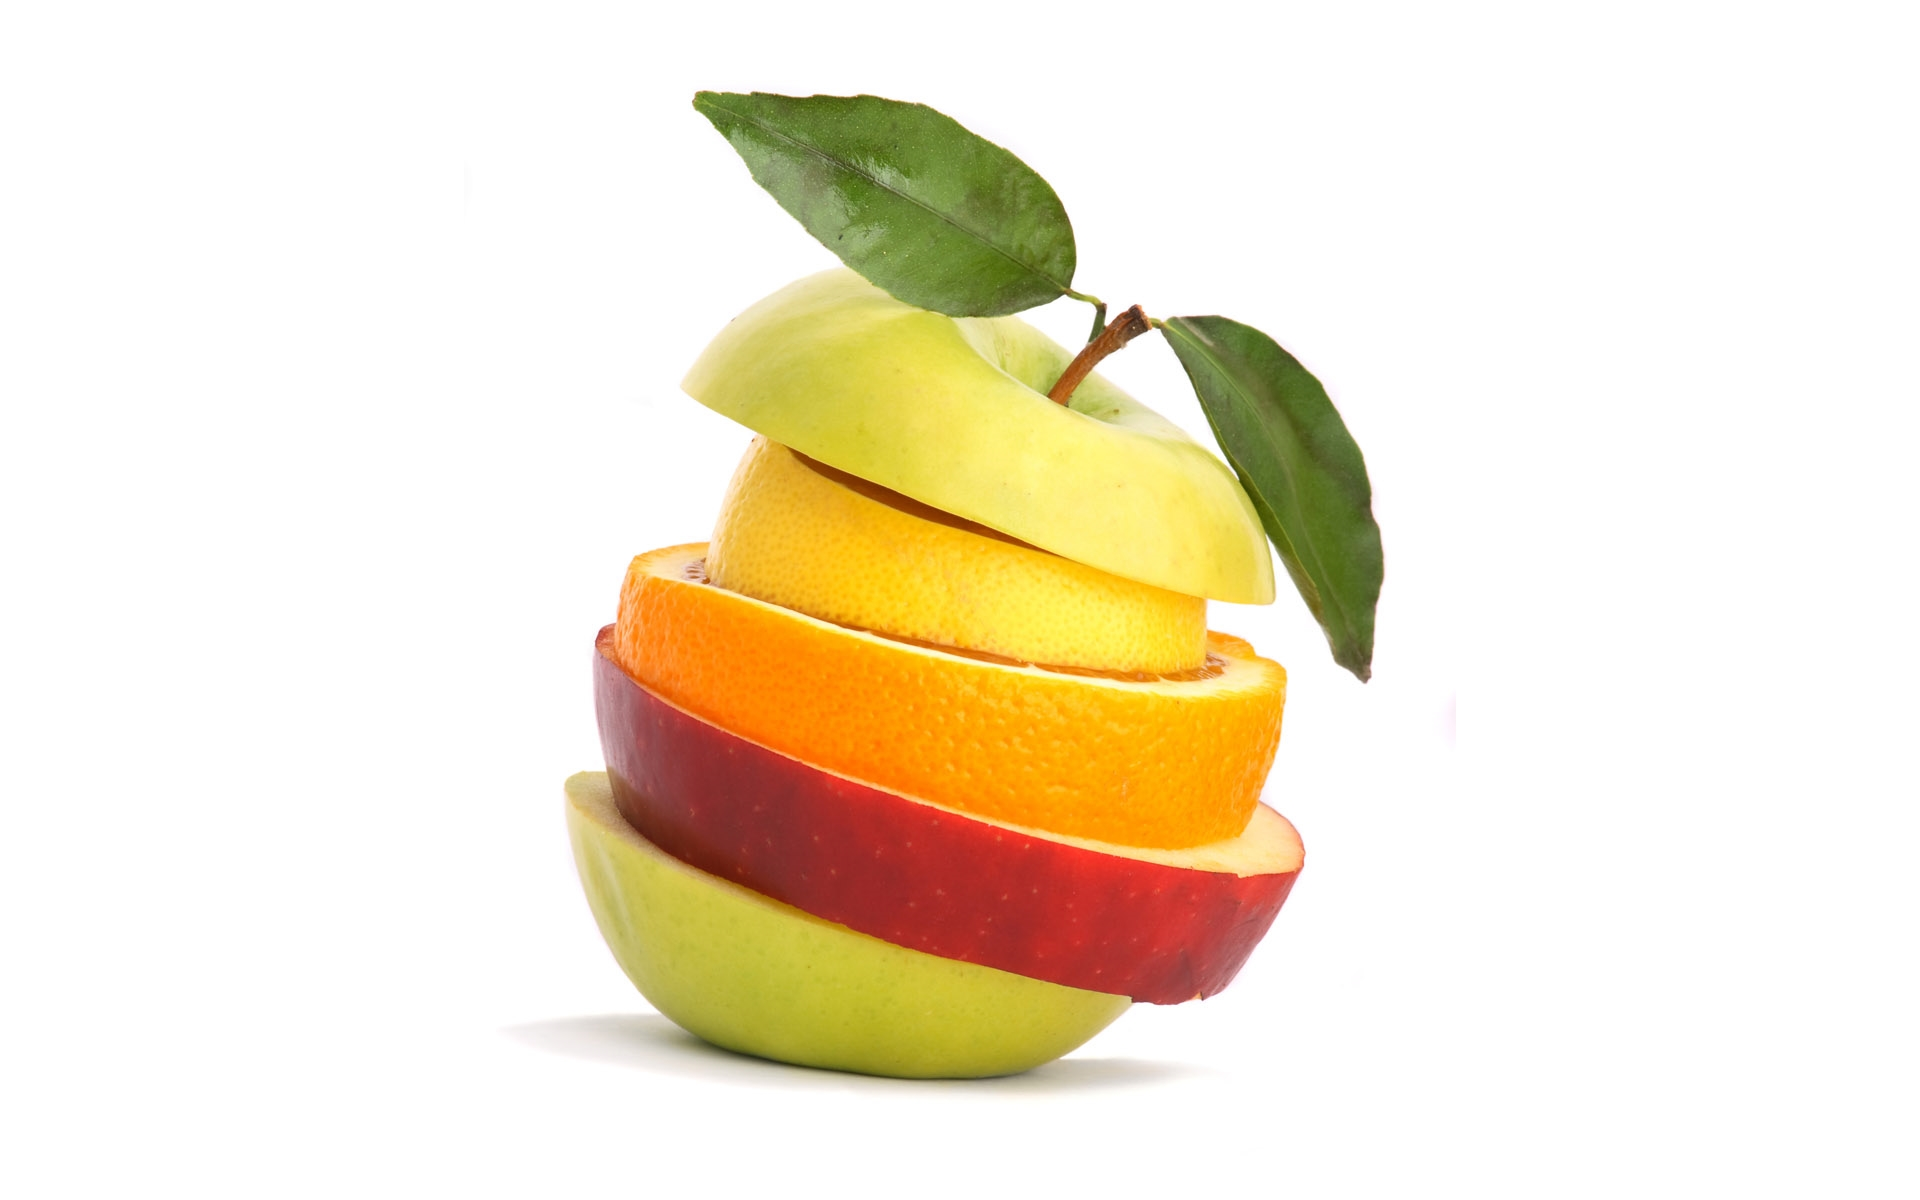 Fruits hd images - Stacked Slices Of Fruit Hd